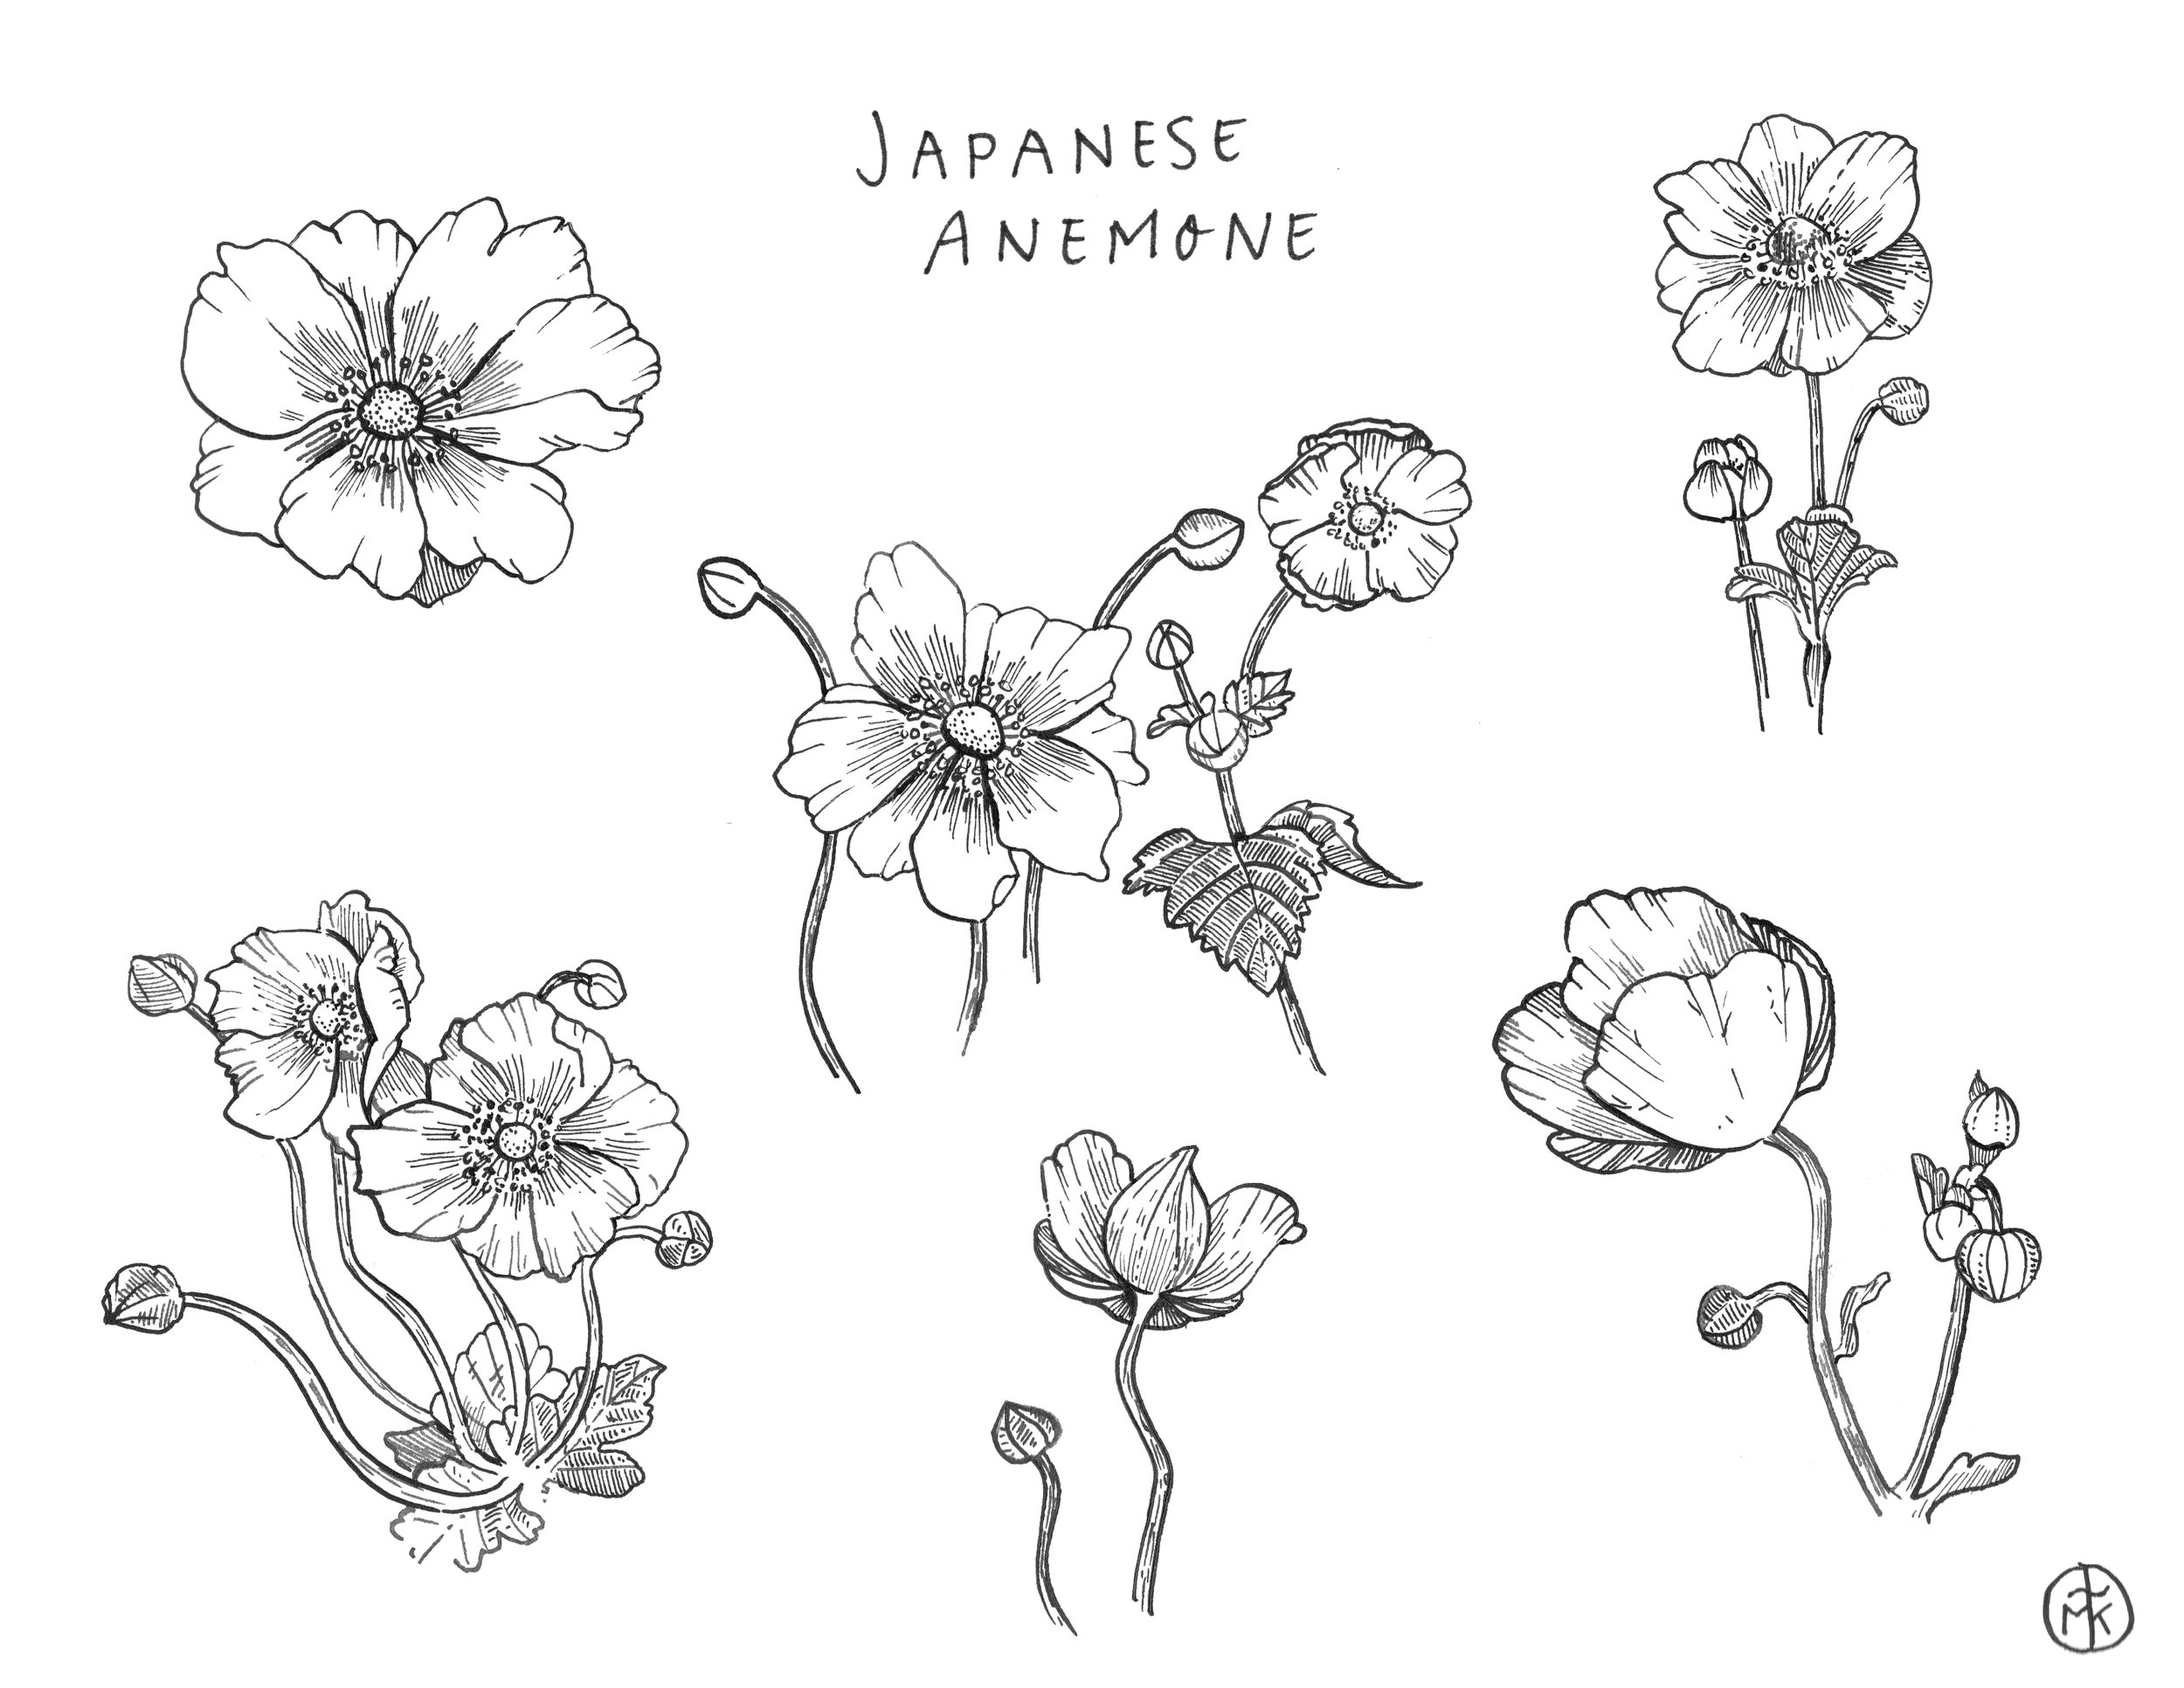 Japanese Anemone Sketches, prep for the #GlobalTalentSearch2018 hosted by Lilla Rogers